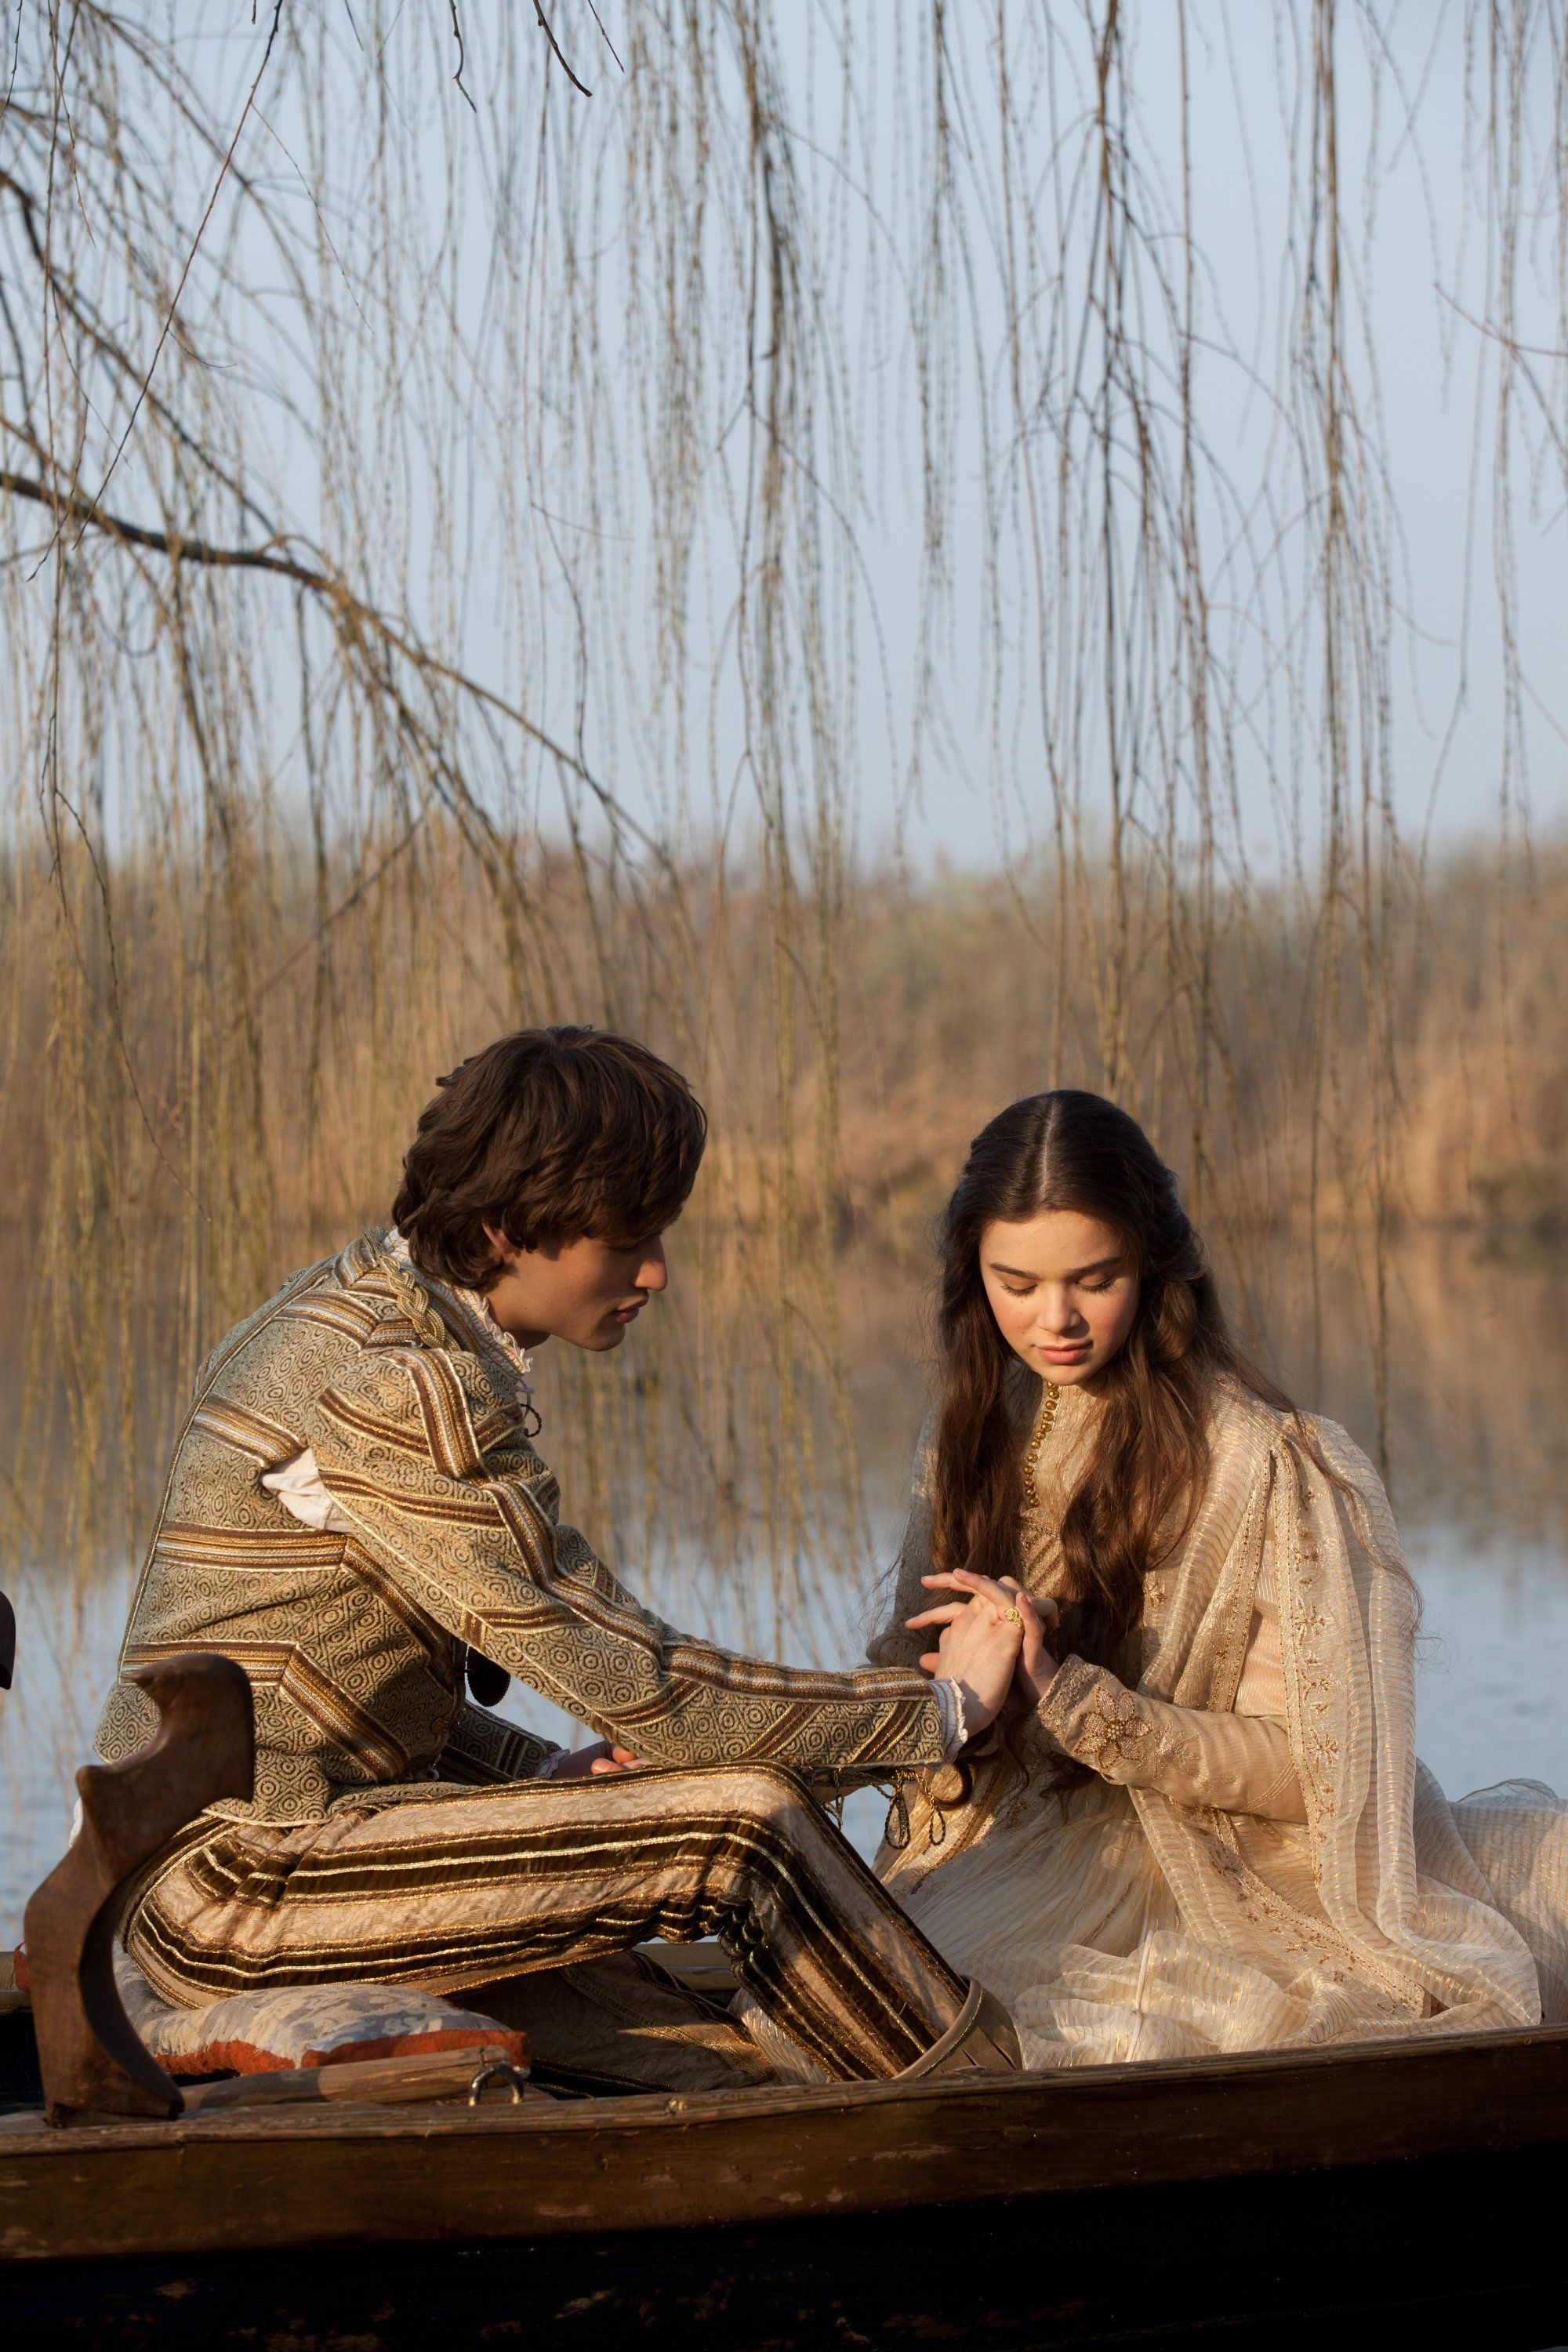 Romeo Juliet (2013). Douglas Booth as Romeo and Hailee ...